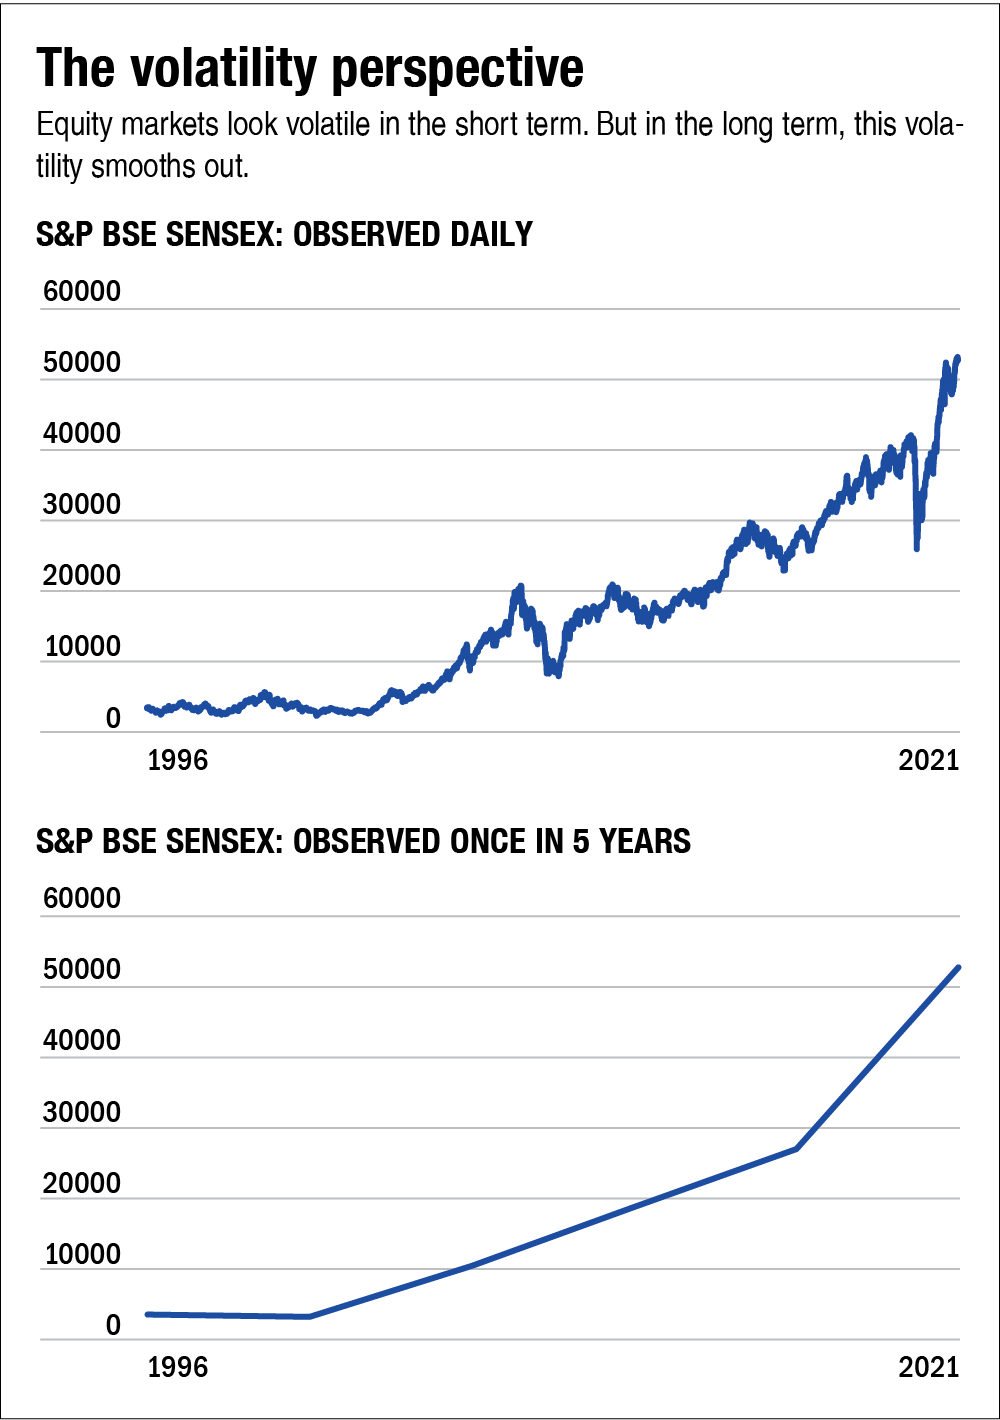 What to do if the market crashes: New investors